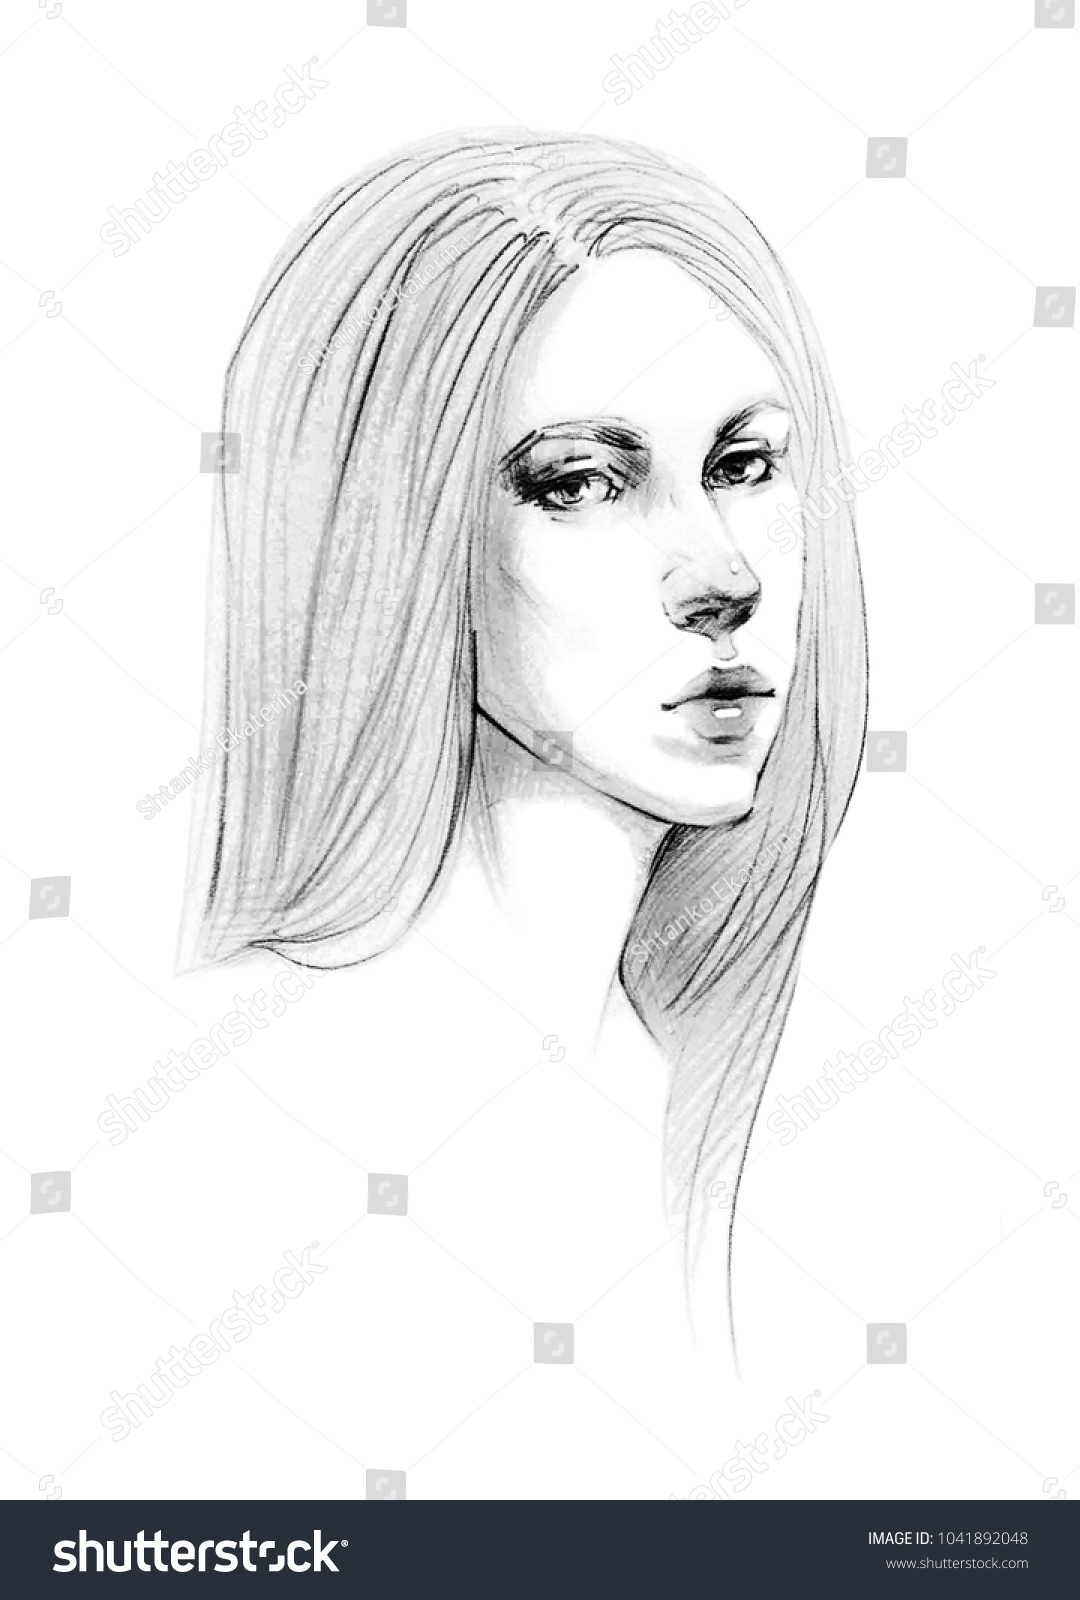 Portrait sketch of a young beautiful girl with long straight hair cute girl pencil drawing